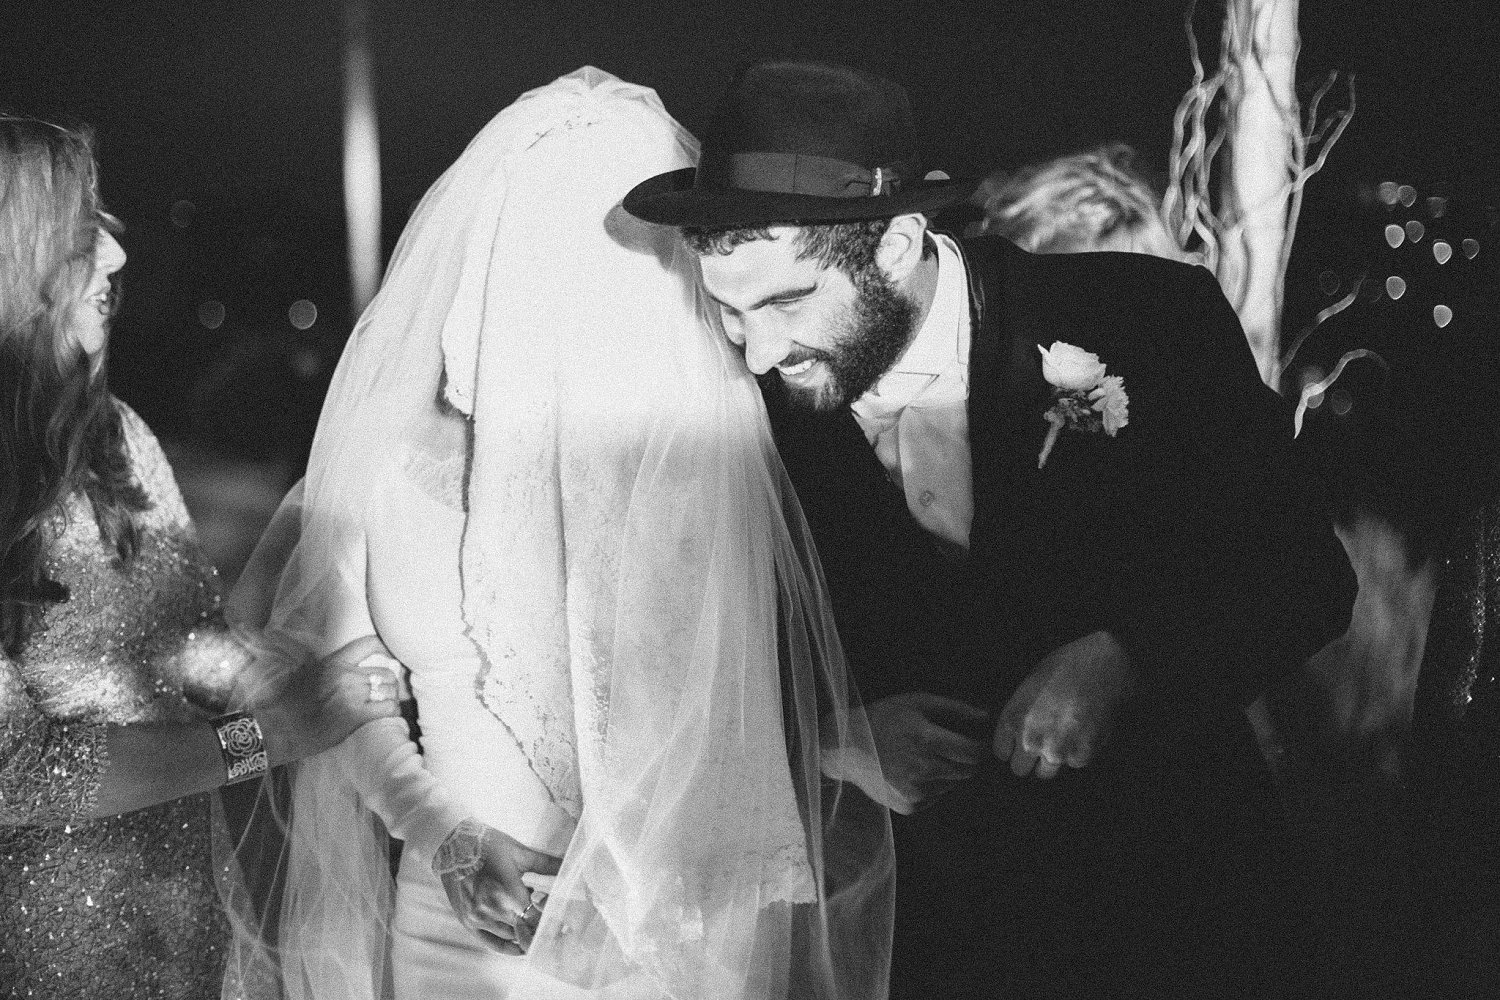 bride talking to groom while standing under chuppah during wedding ceremony